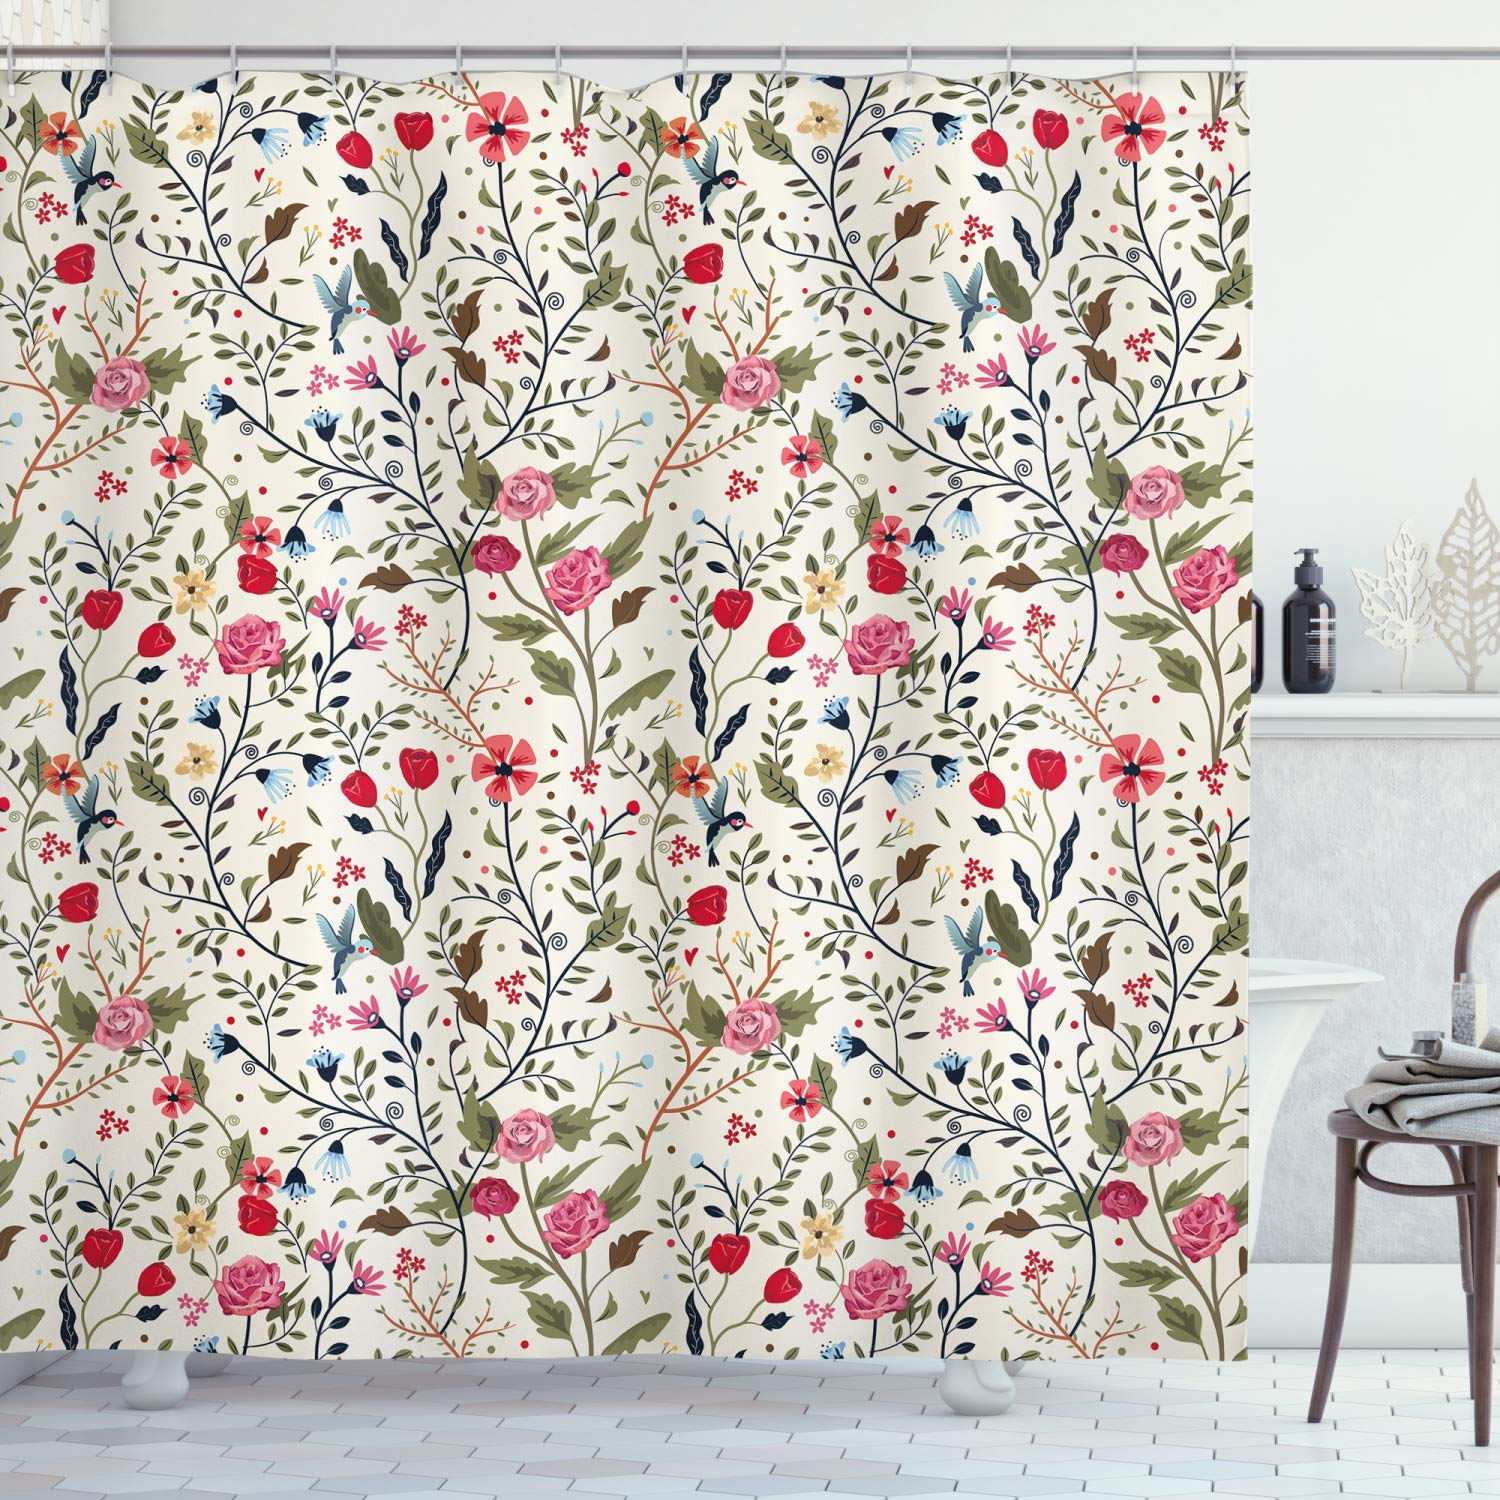 """Ambesonne Floral Shower Curtain, Vibrant Colored Complex Image Birds with Roses Leaves and Polka Dots Nature Scenery, Cloth Fabric Bathroom Decor Set with Hooks, 70"""" Long, Cream Pink"""